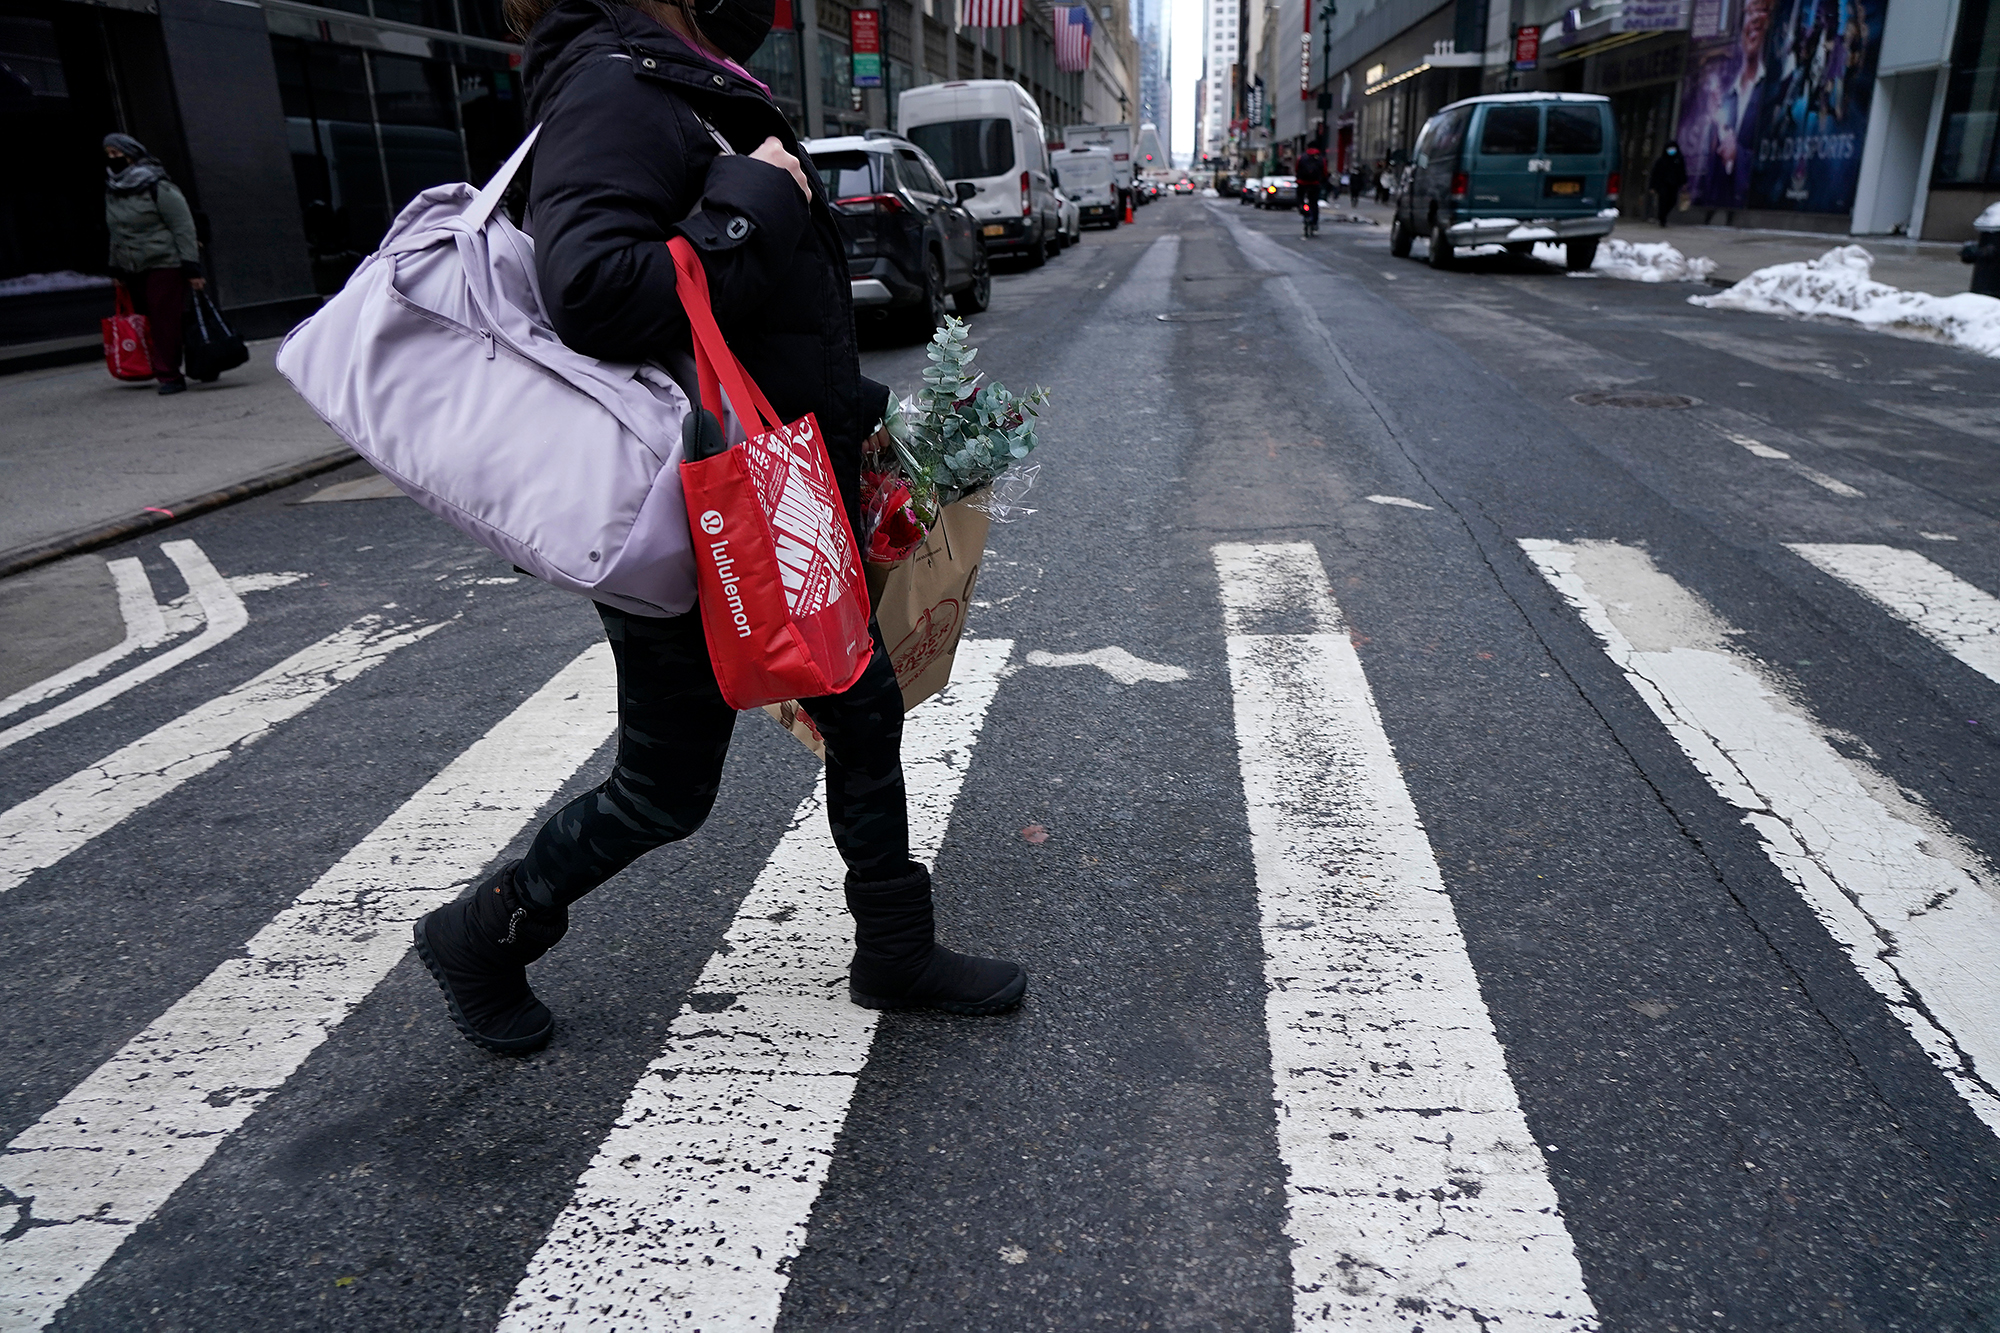 American consumer spending jumped in January thanks to stimulus checks